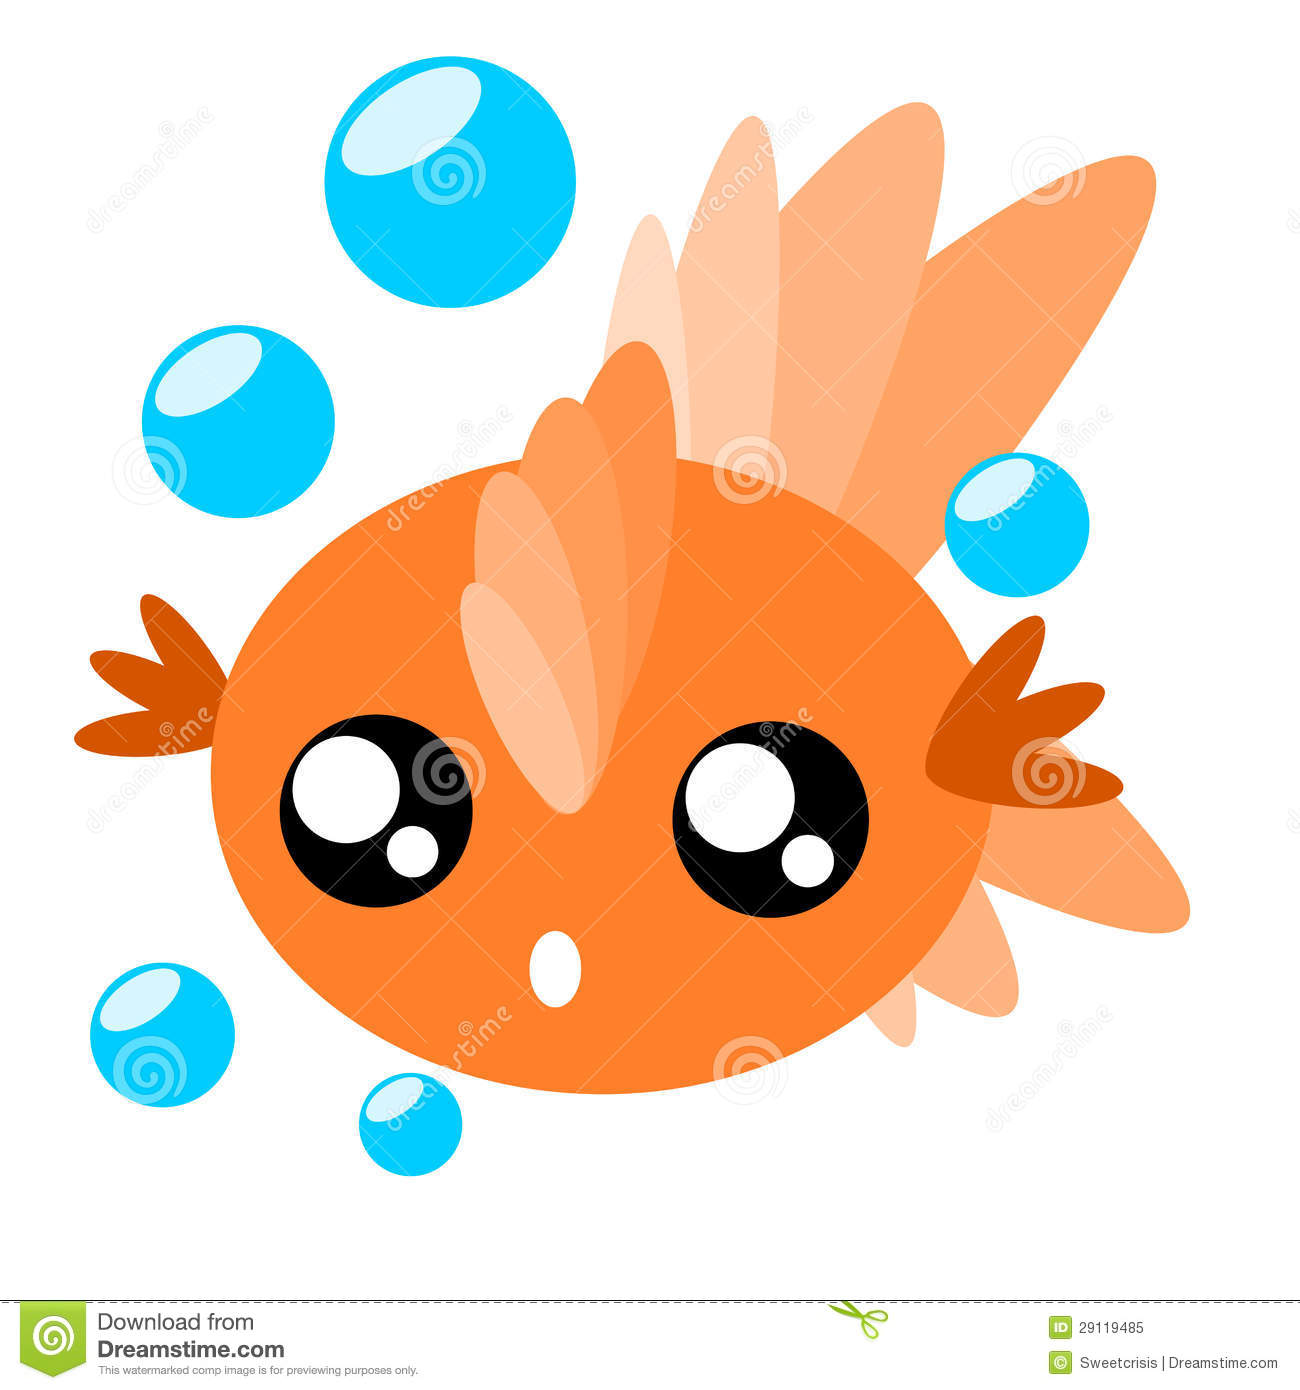 Cartoon Goldfish Illustration Royalty Free Stock Photo Image